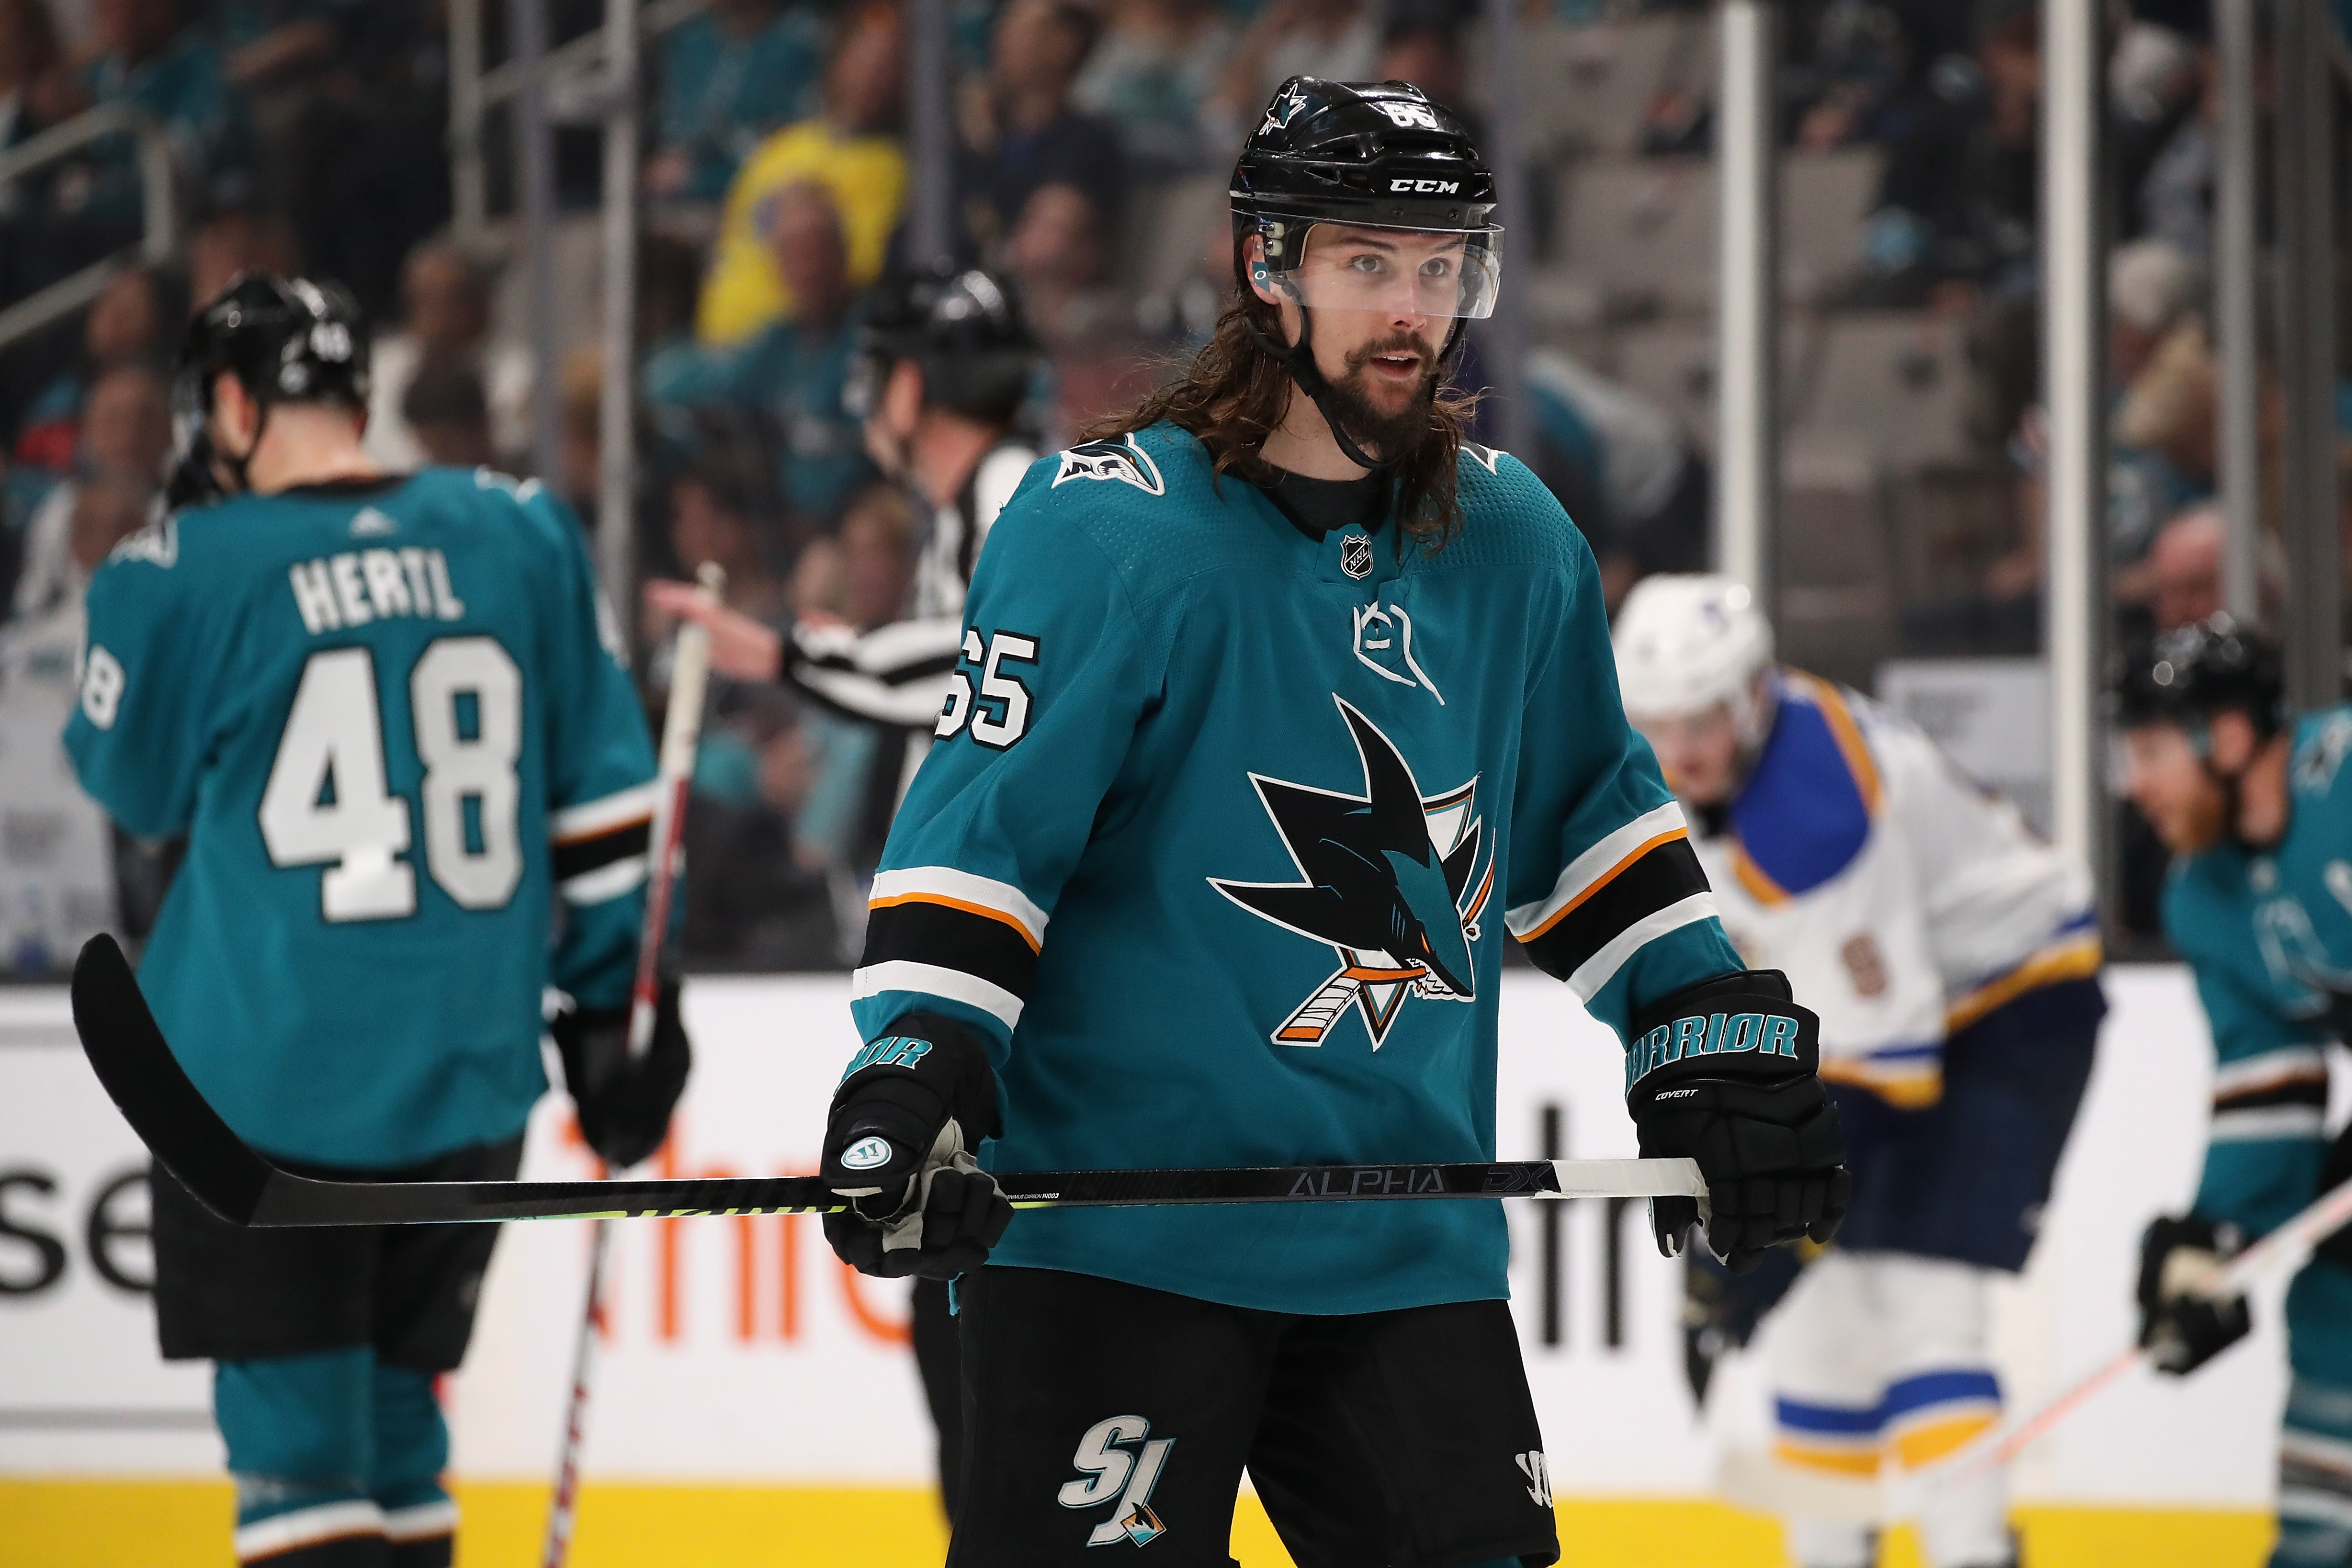 SAN JOSE, CALIFORNIA - MAY 11: Erik Karlsson #65 of the San Jose Sharks against the St. Louis Blues in Game 1 NHL Western Conference Final during the 2019 NHL Stanley Cup Playoffs at SAP Center on May 11, 2019 in San Jose, California.